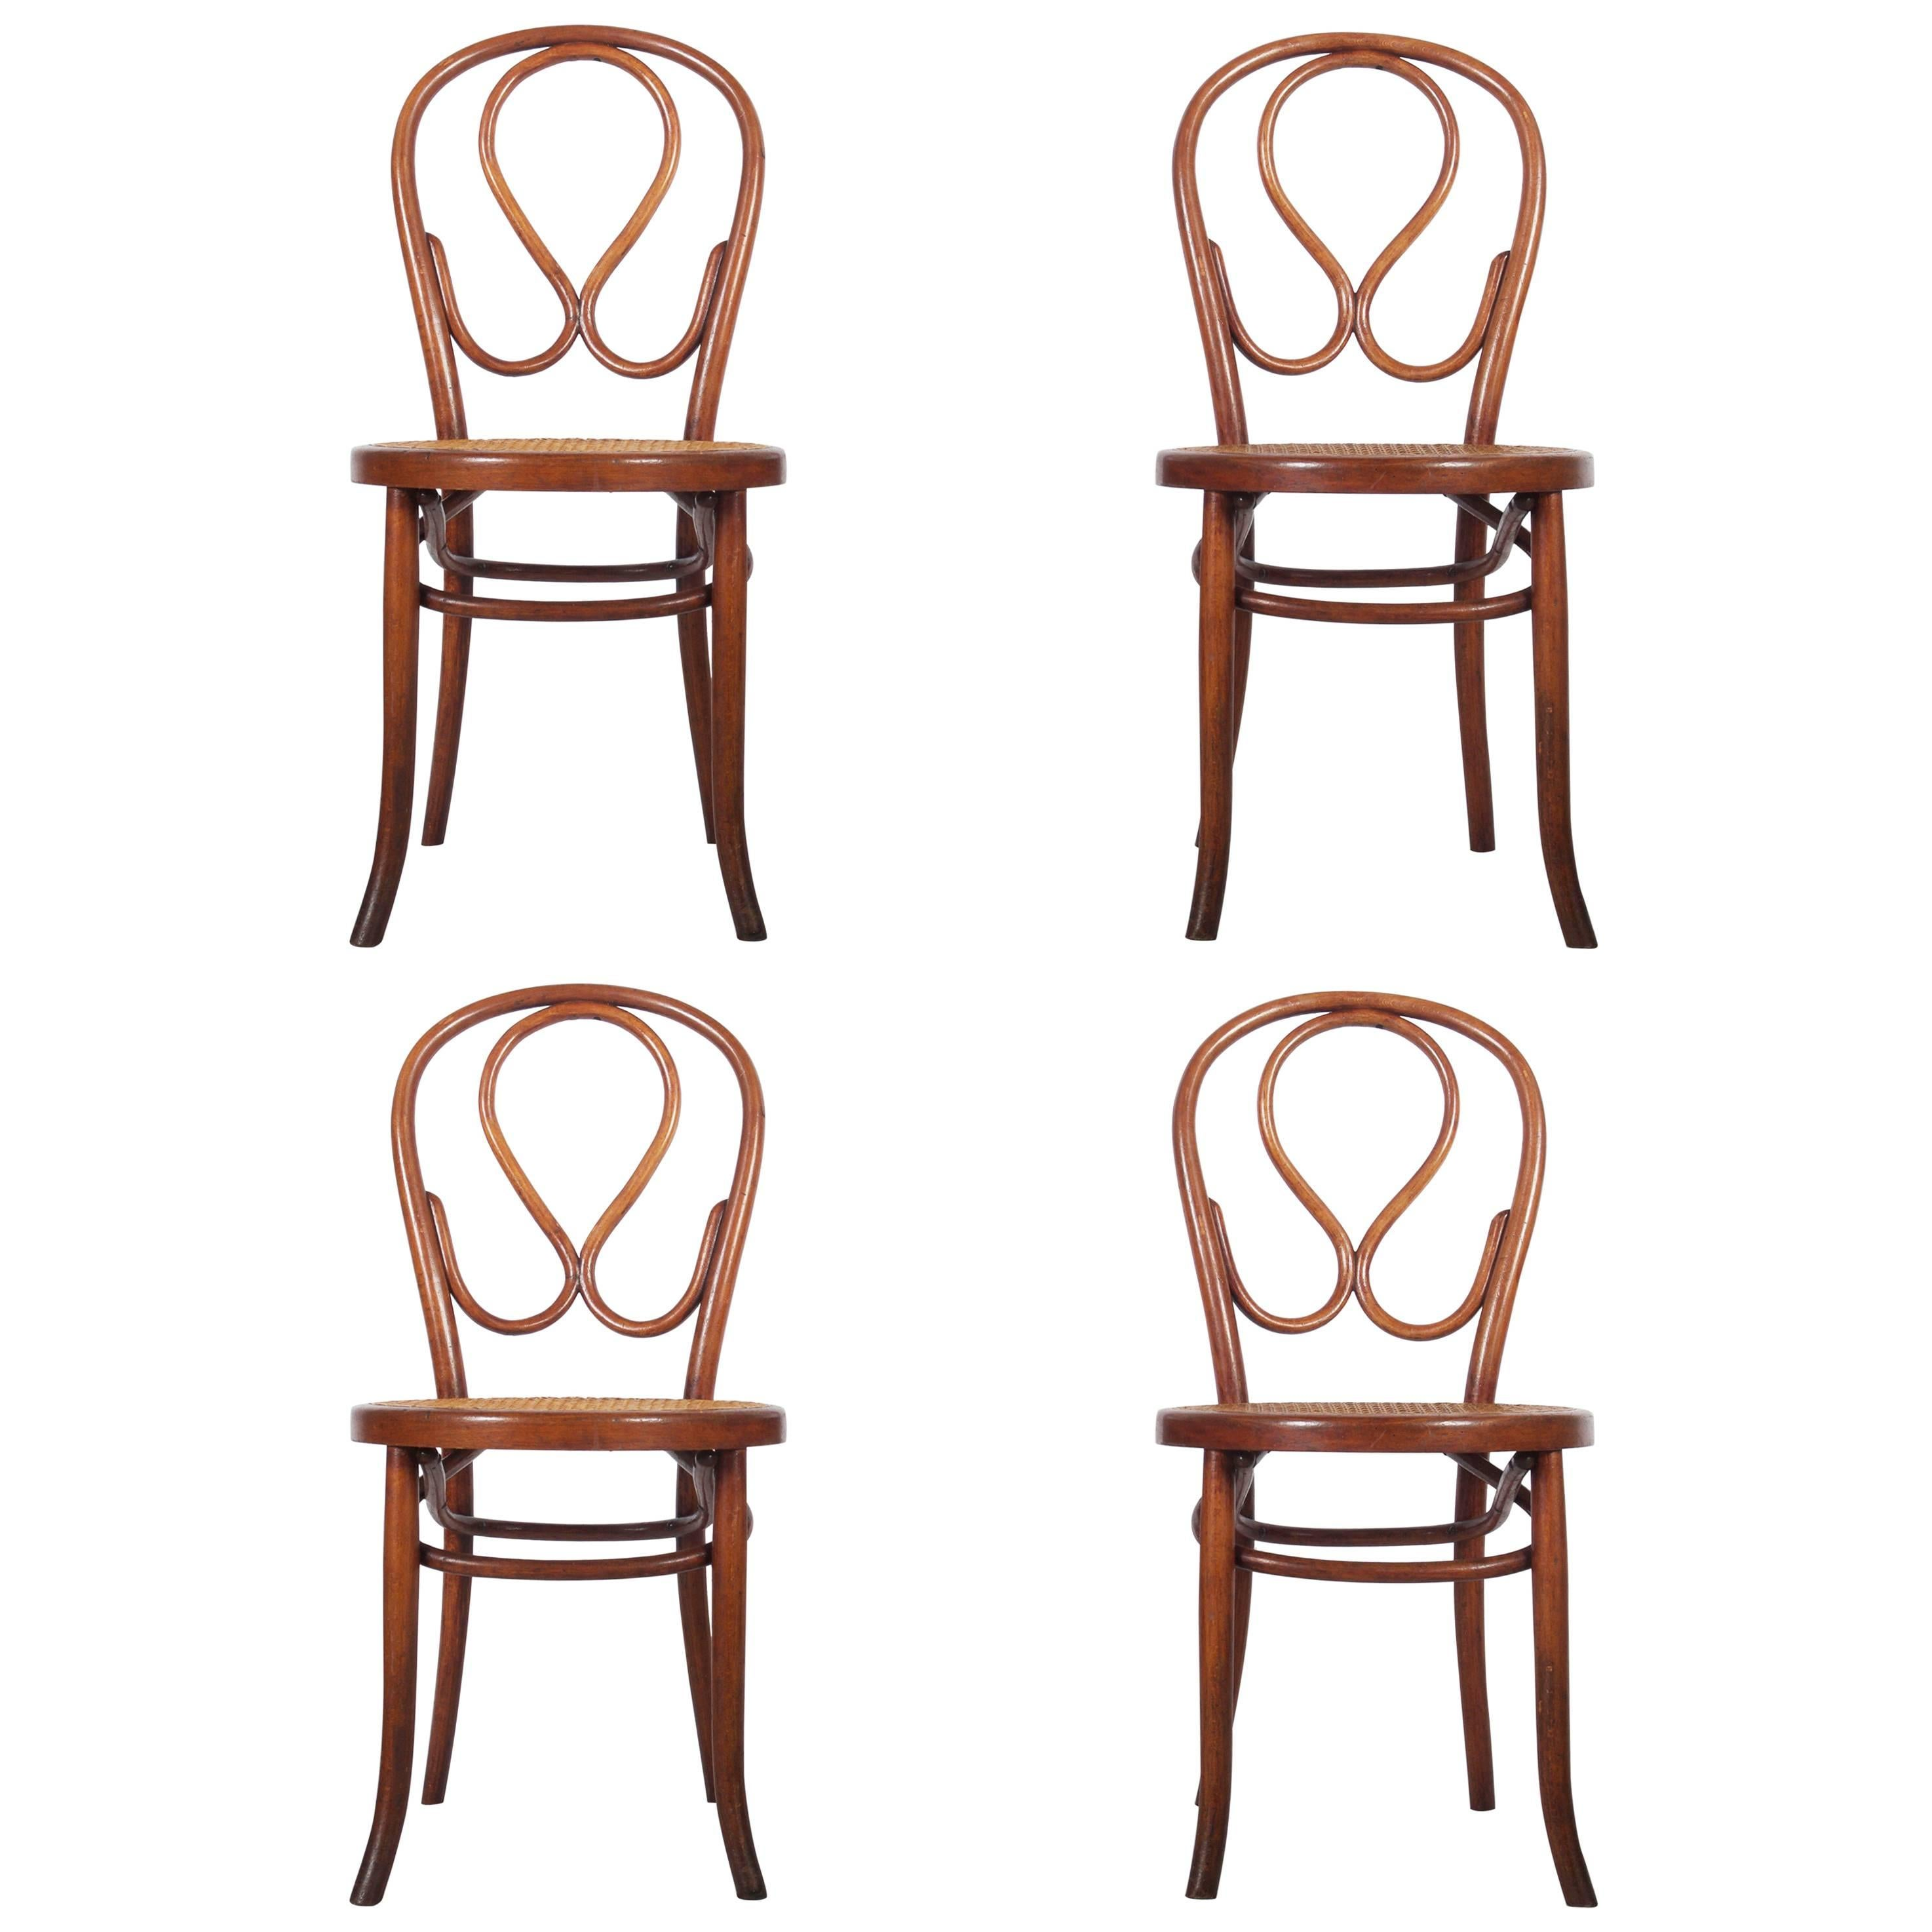 Set of Four Bentwood Dining Chairs Attributed to Thonet